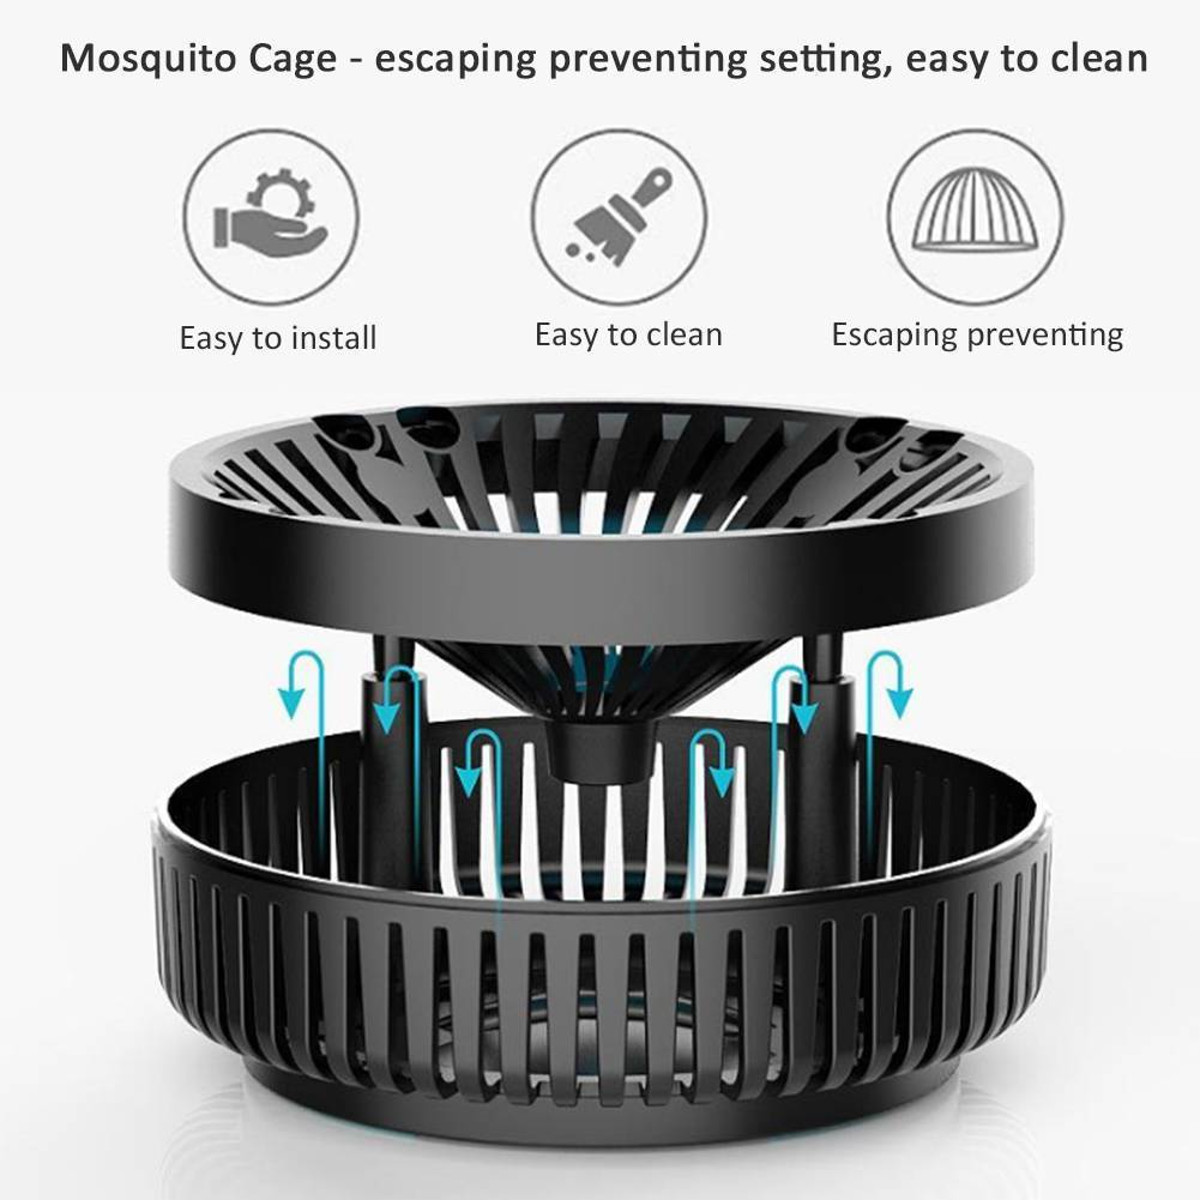 Garden Electric Mosquito Killer Light USB LED-Ray Electric Low Noise Fan Lamp Suction-type Mosquito Dispeller UV Mosquito Killer Light USB LED Trap Lamp Insect Bug Catcher Tool Light Control